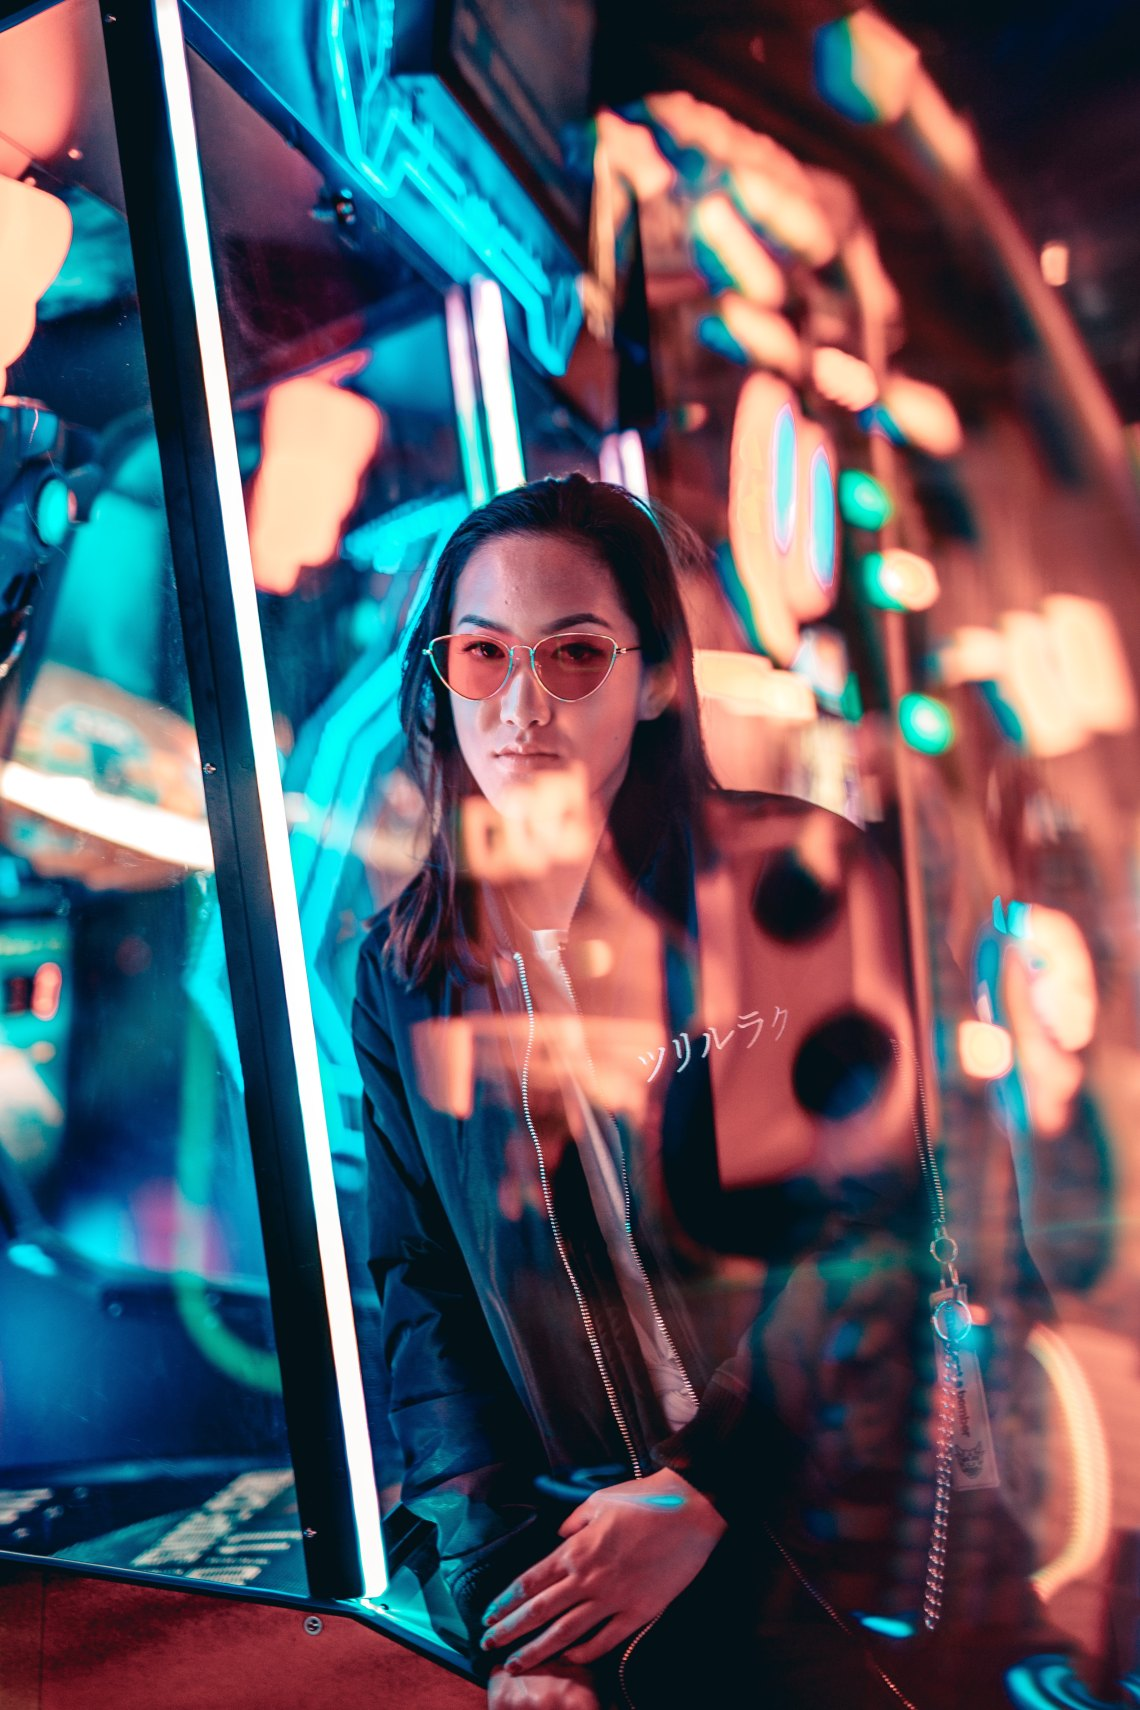 girl surrounded by neon